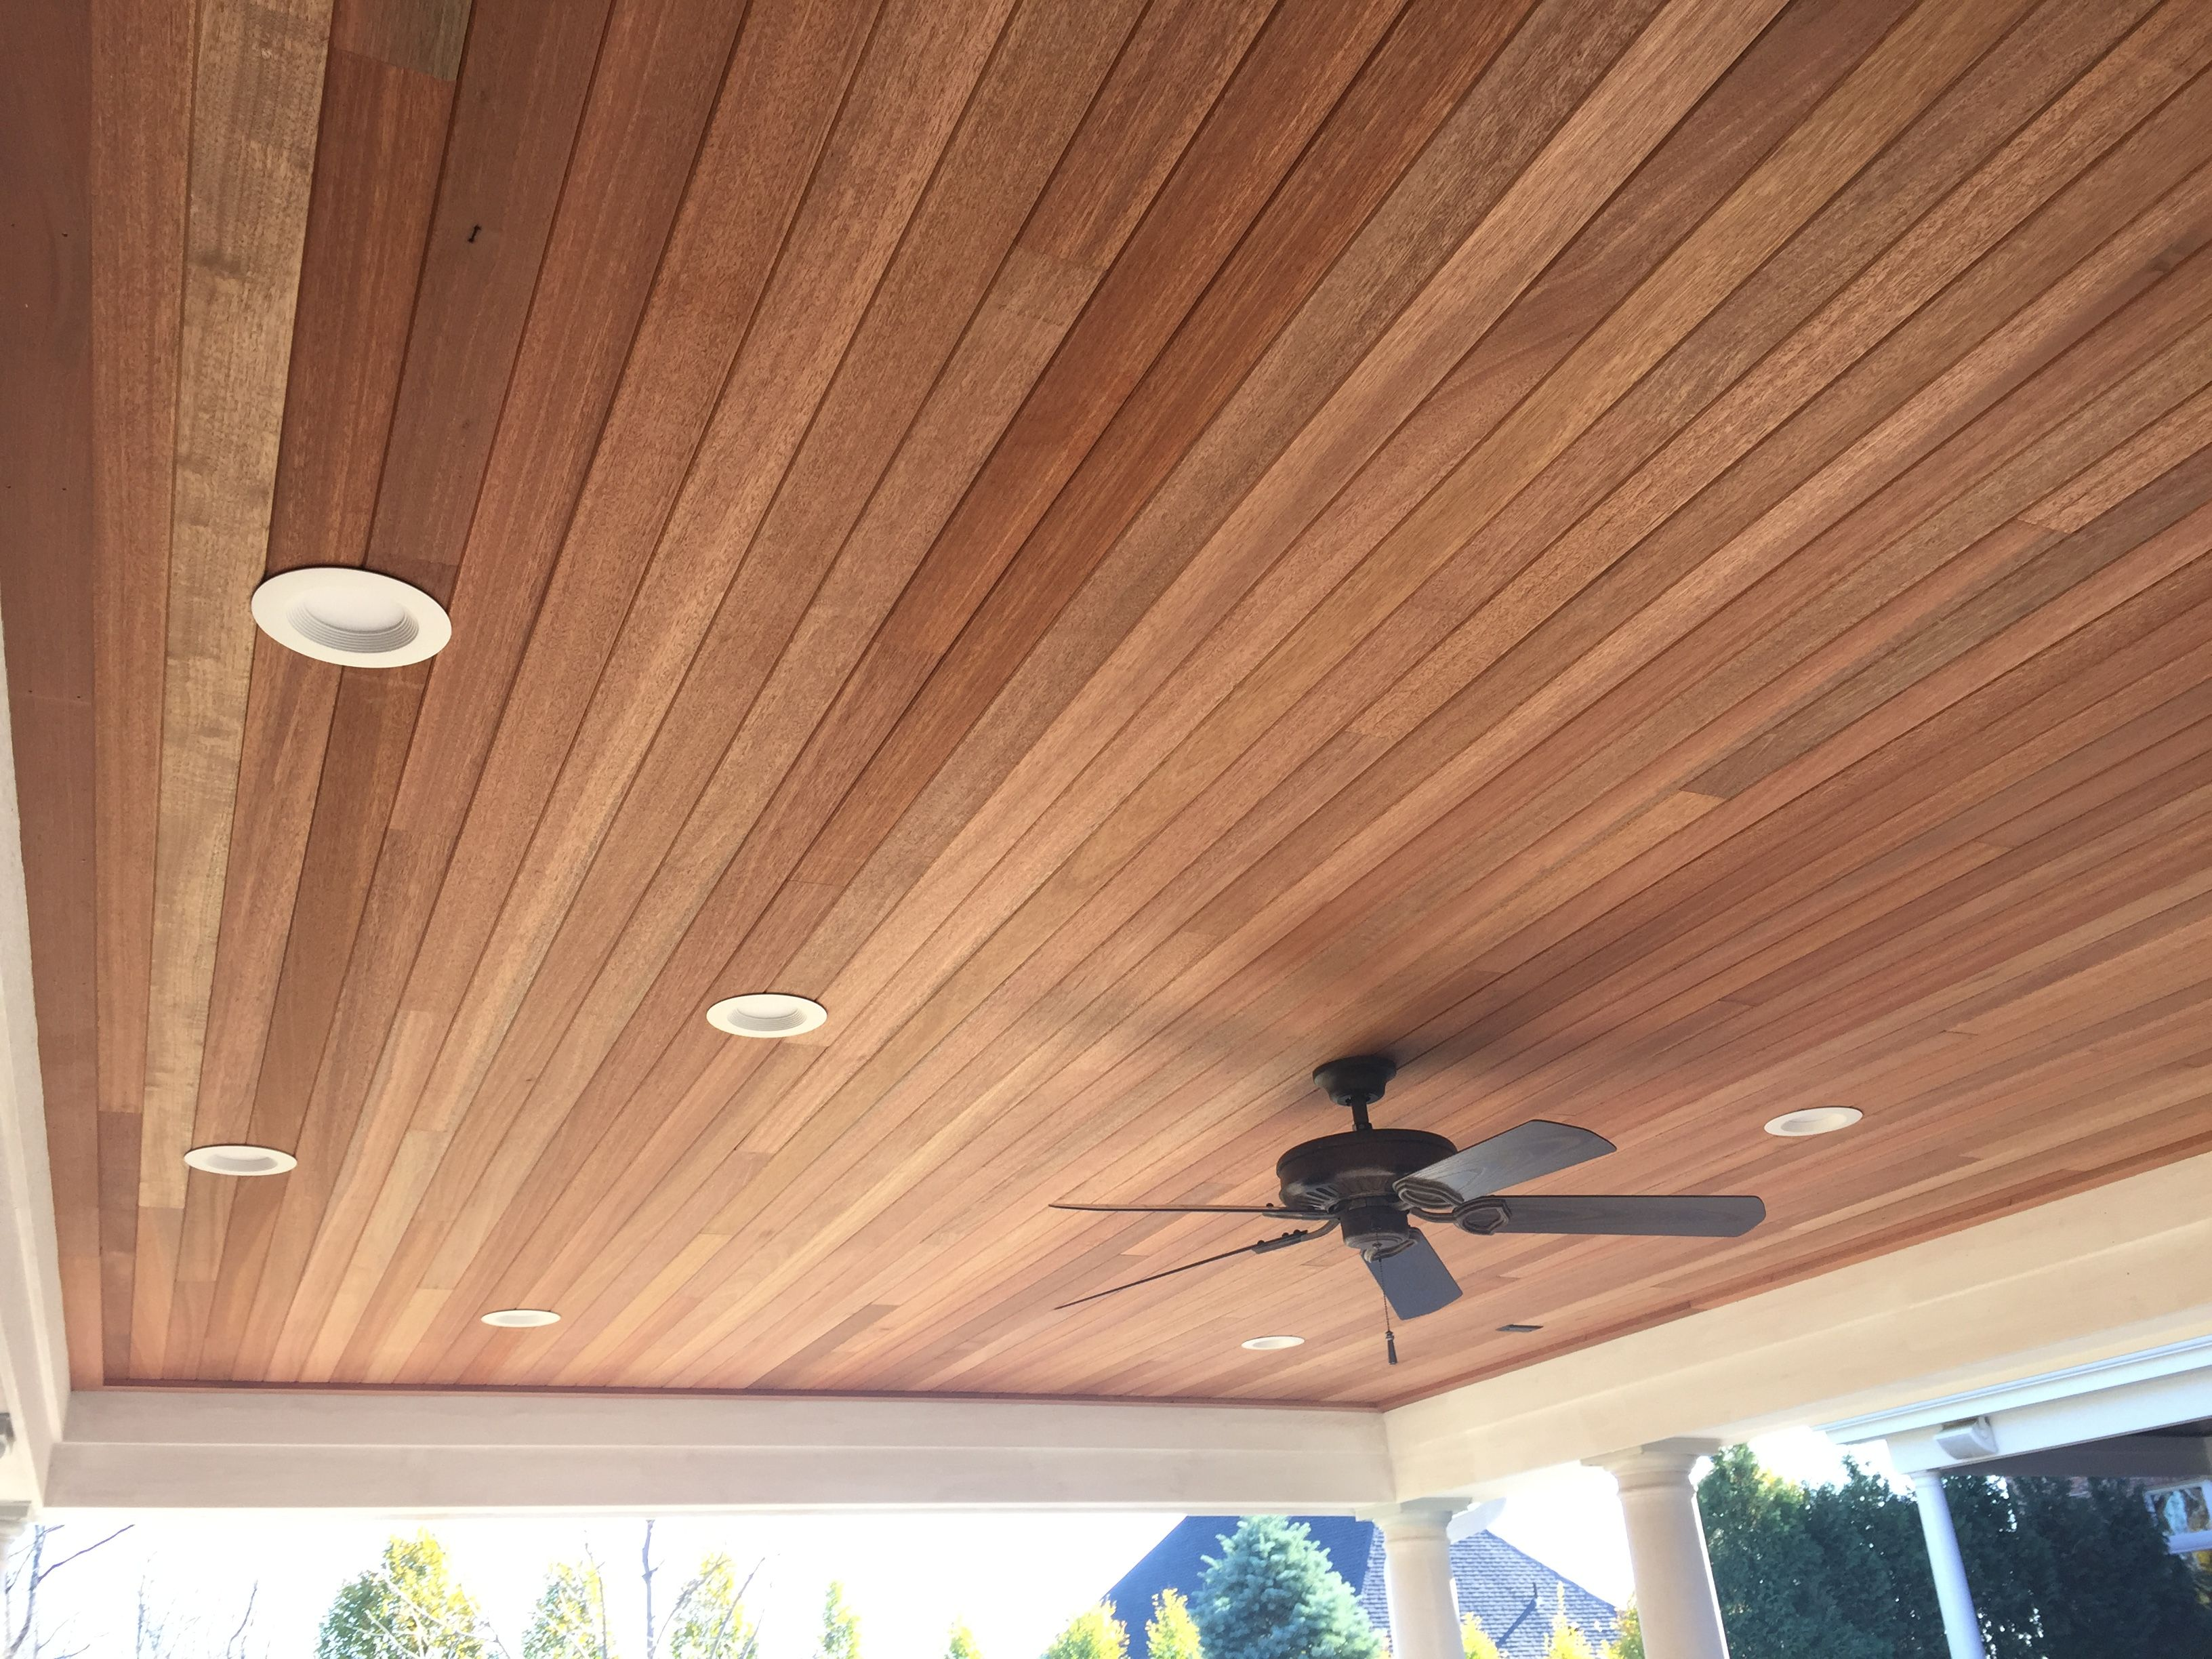 mahogany tongue and groove ceiling